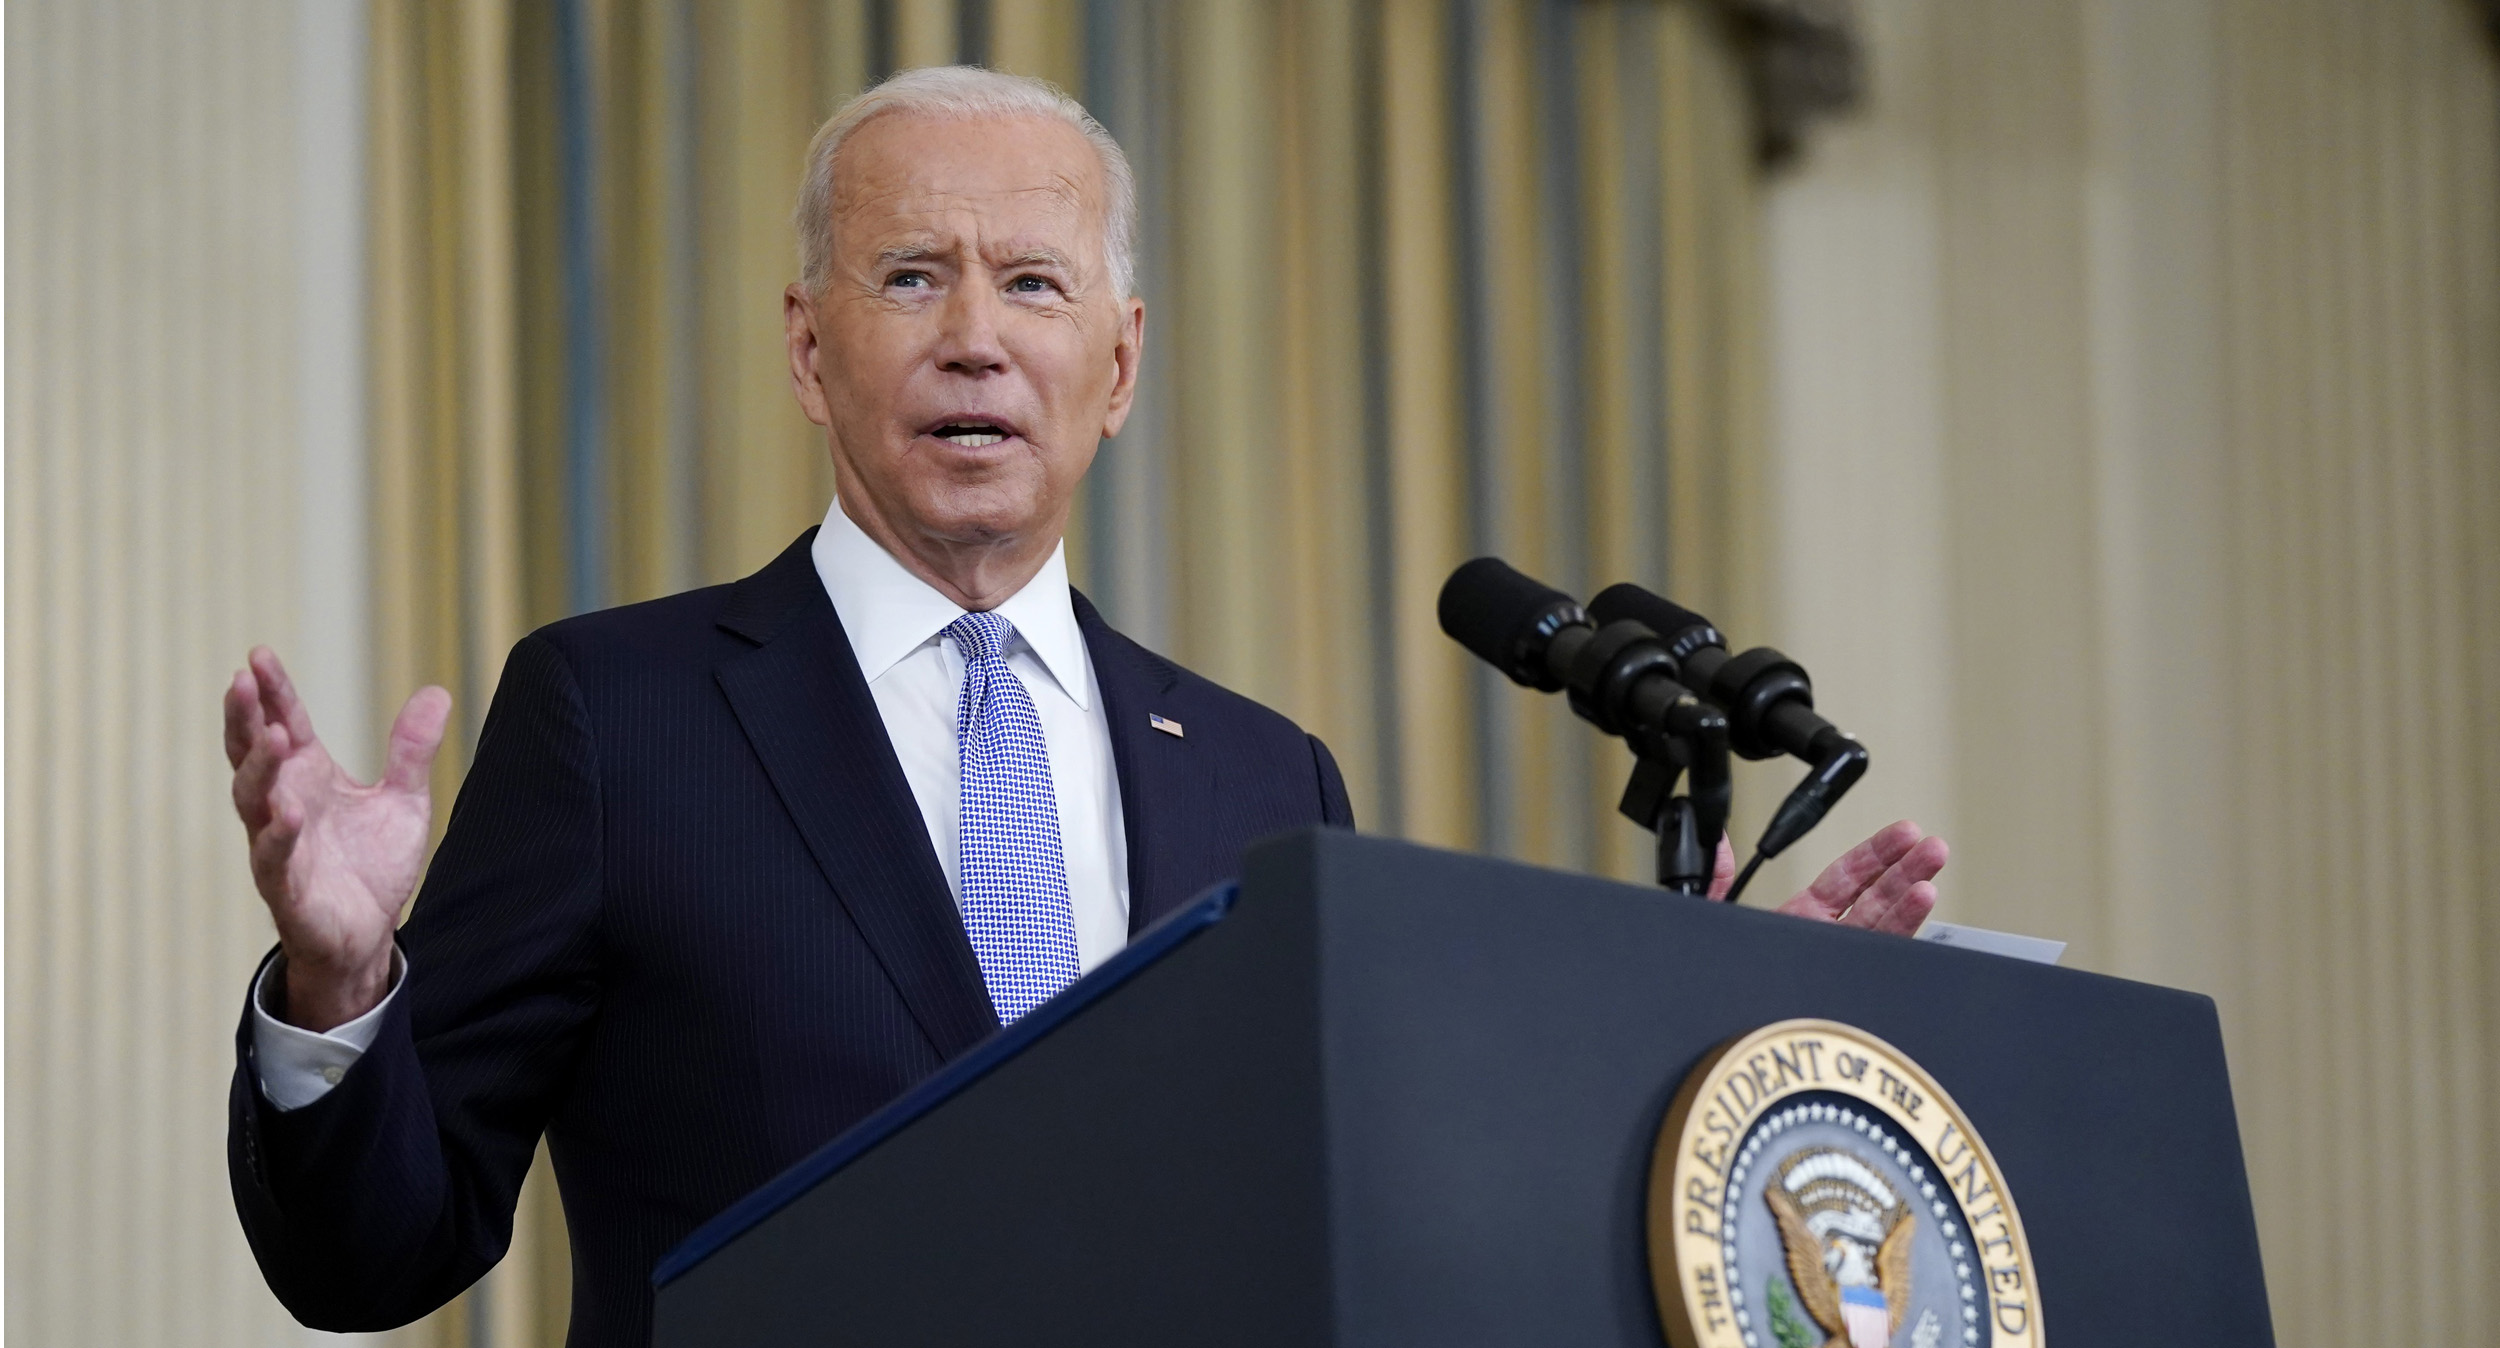 Biden urges Americans to get boosters, says he will soon do the same